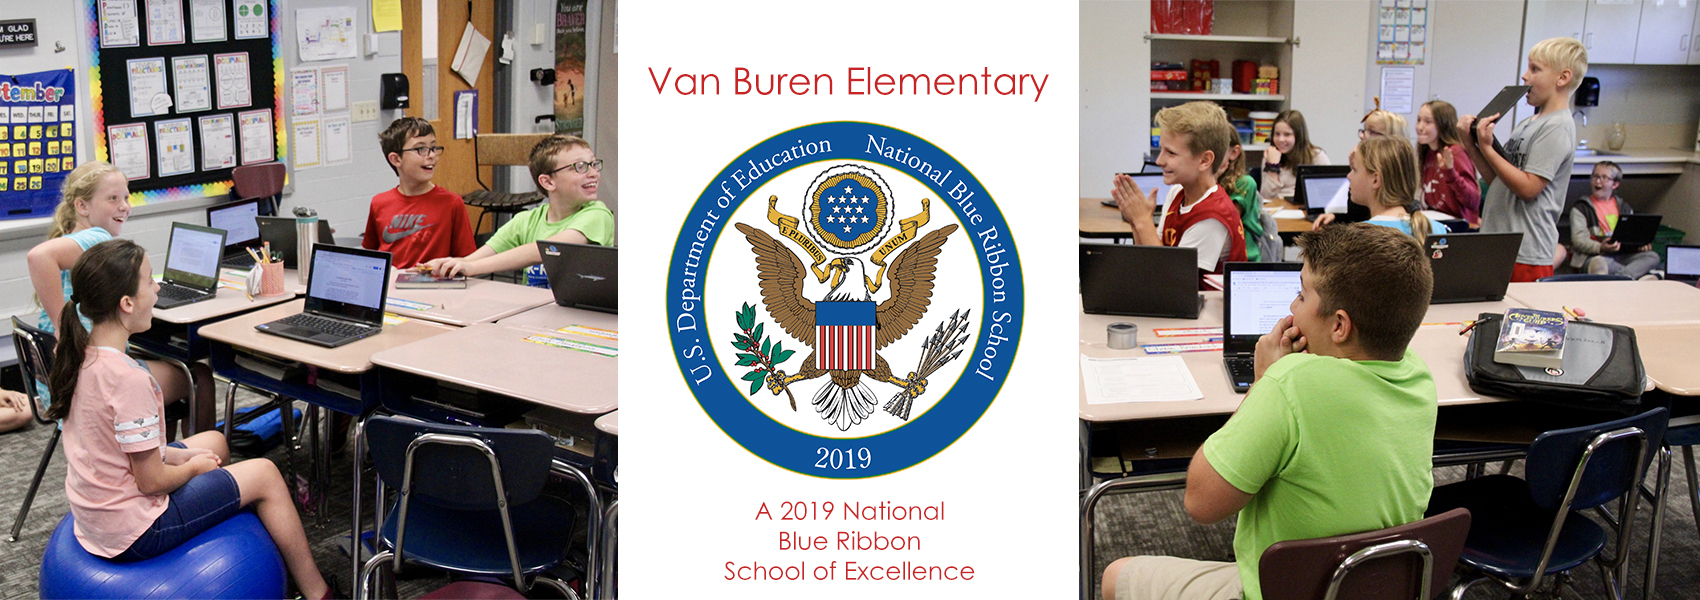 Van Buren Elementary: A 2019 National Blue Ribbon School of Excellence